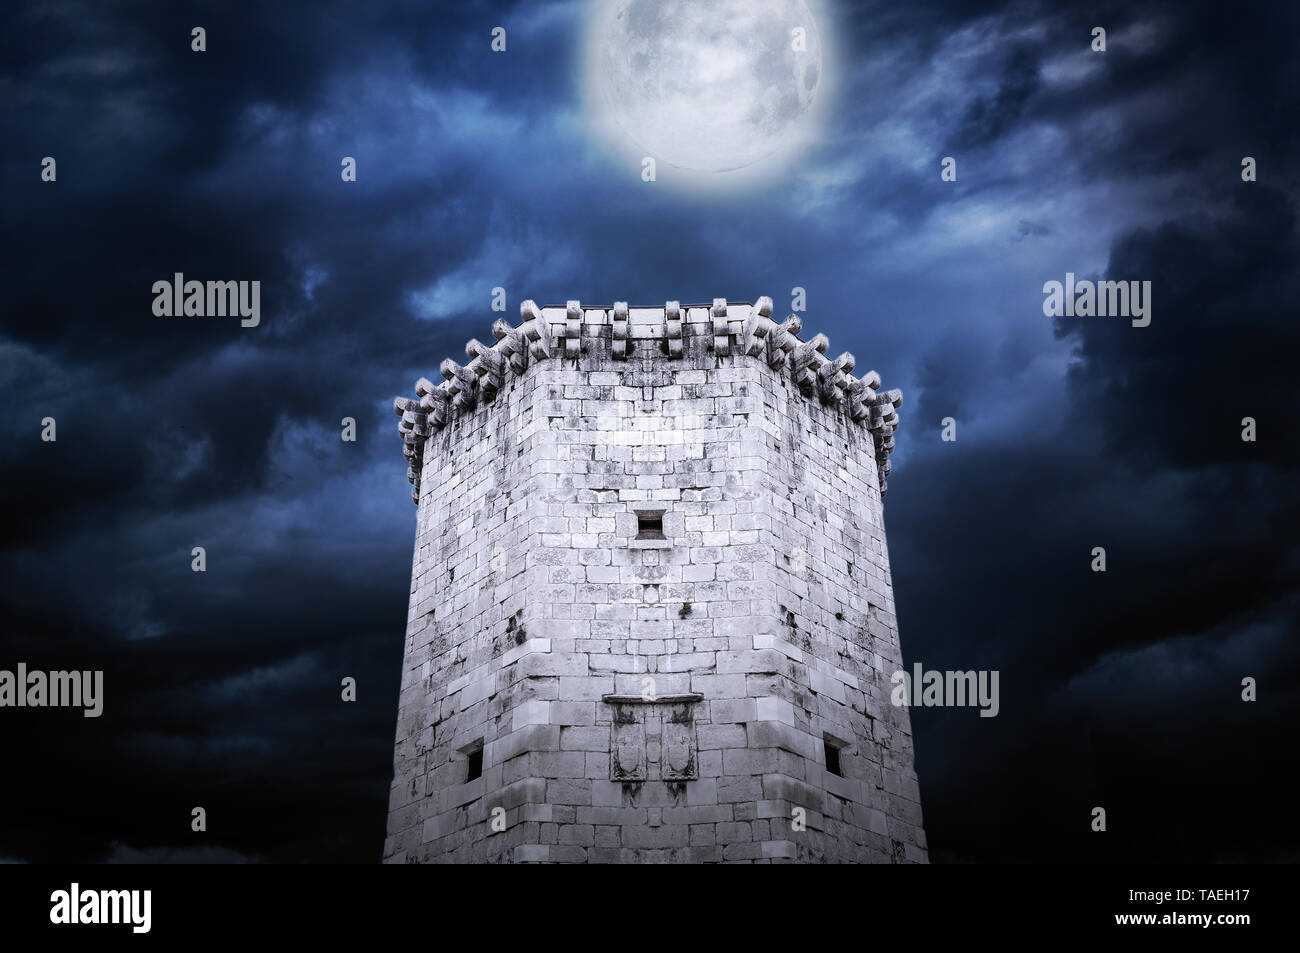 Tower of castle at night in the moonlight. - Stock Image